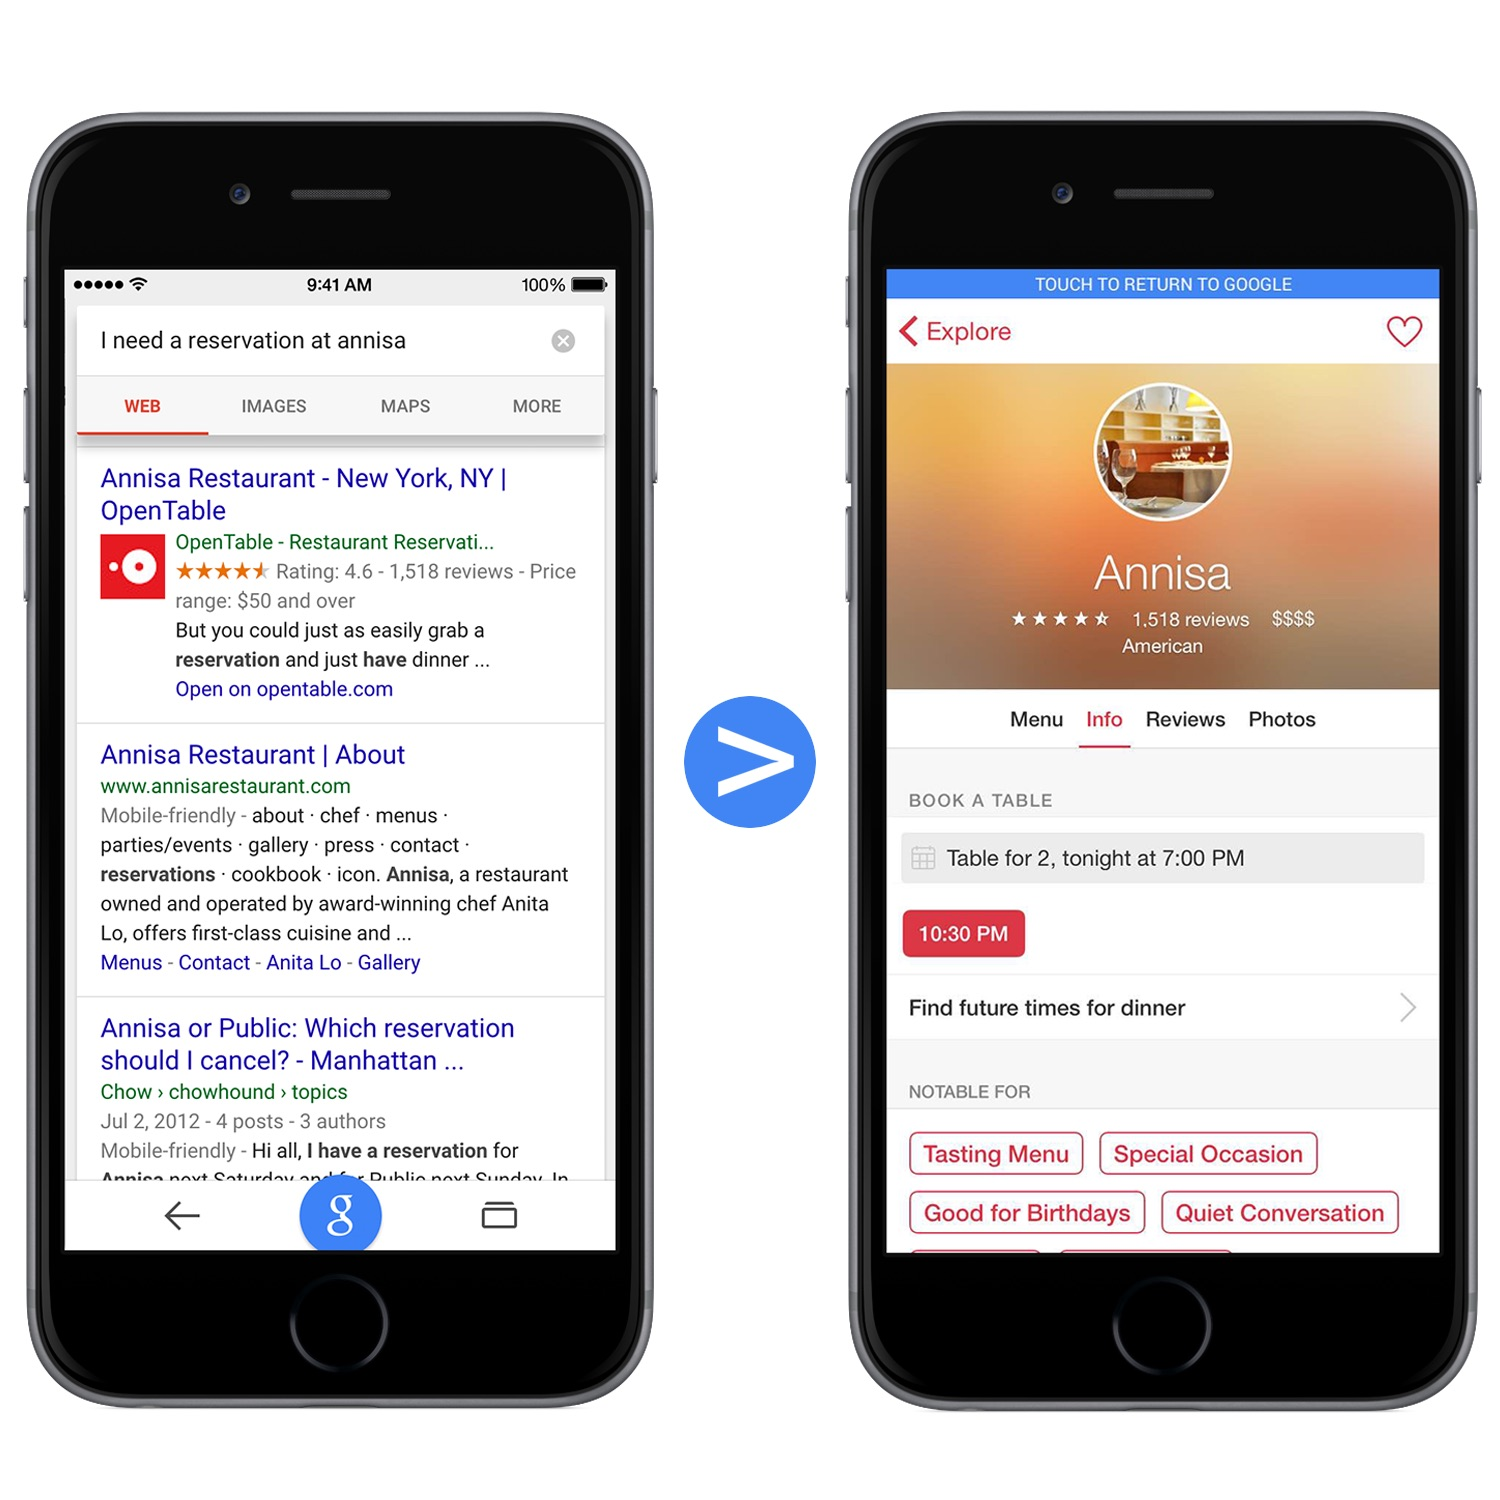 Google's App Indexing speeds up switching to apps from Chrome and Google Search